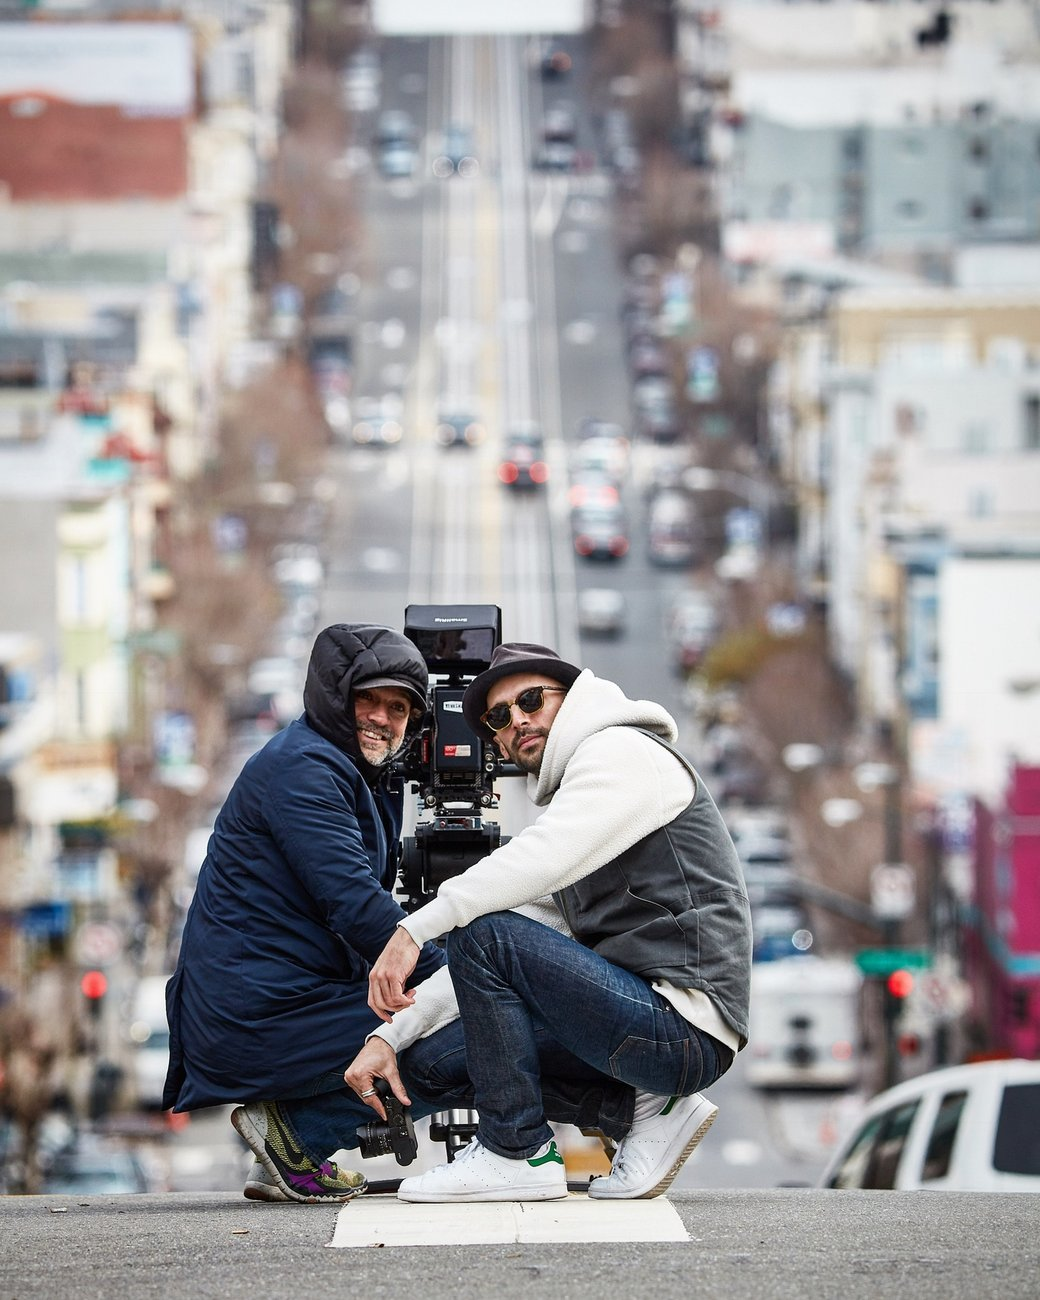 two people posing for a photograph on a sloped city street